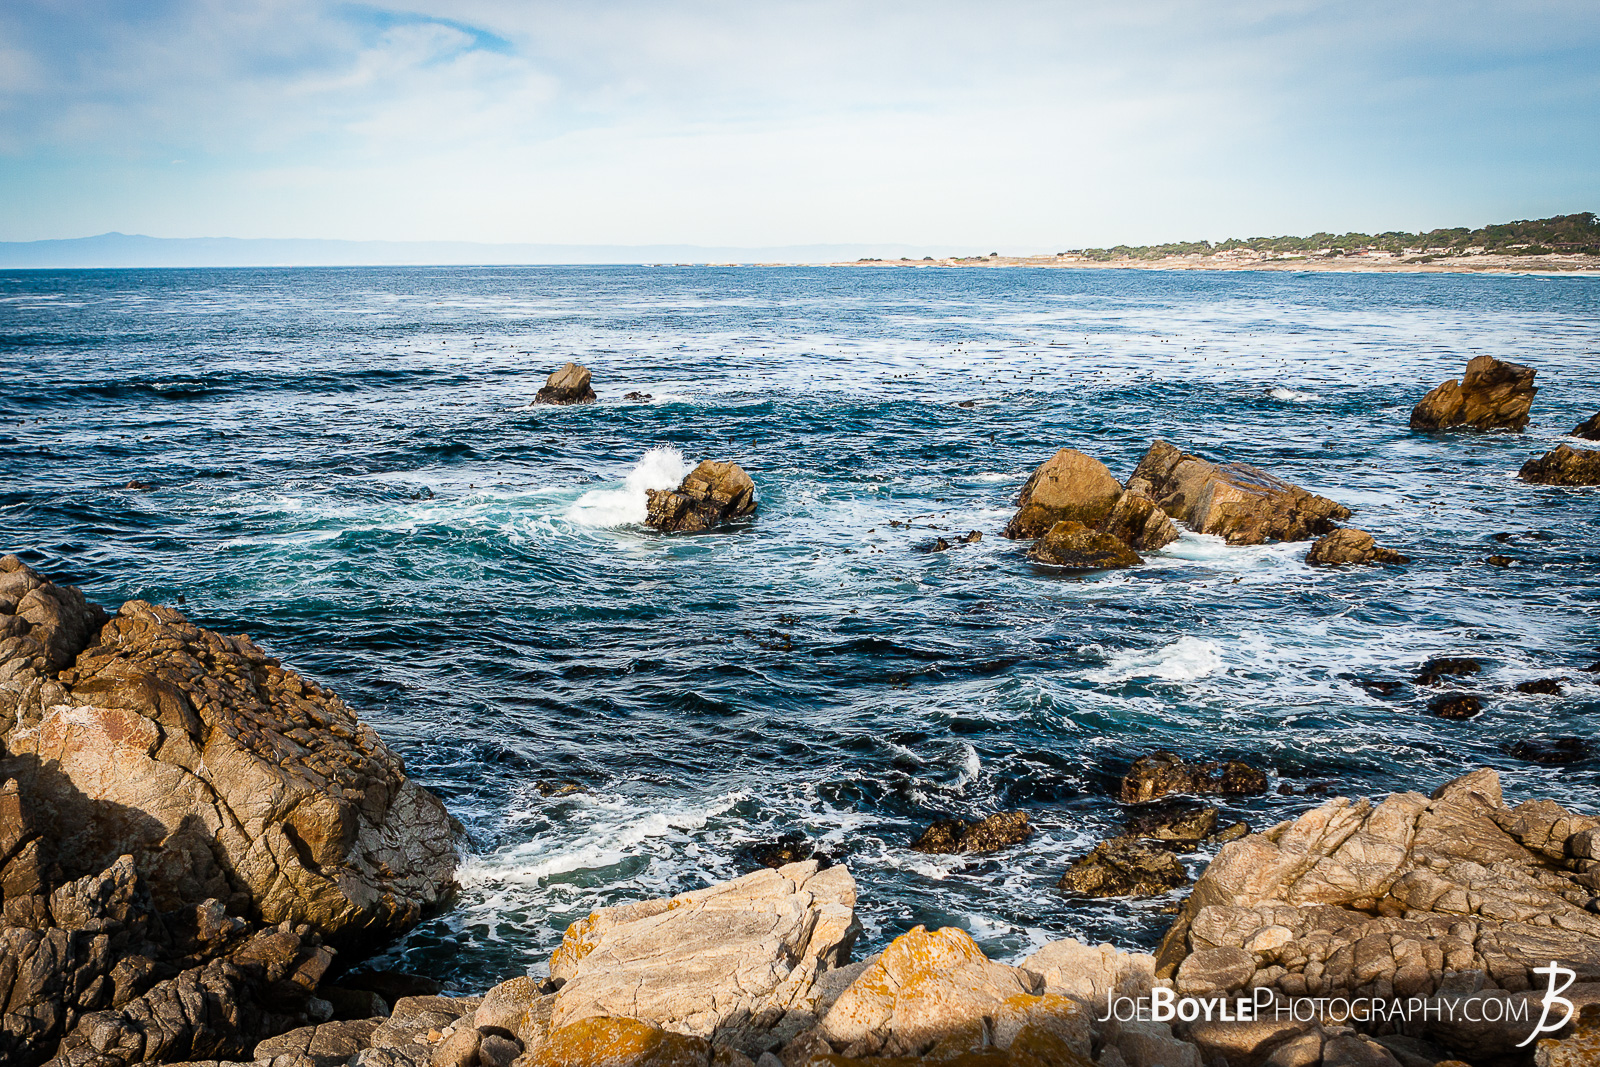 While visiting a friend in California we took the 17 Mile Drive to Carmel by the Sea. It was a great drive with absolutely awesome and stunning views! Here is a photo from a few different shots that I took of this area. The wind was starting to whip up and the waves were getting larger, cooler and more extravagant.